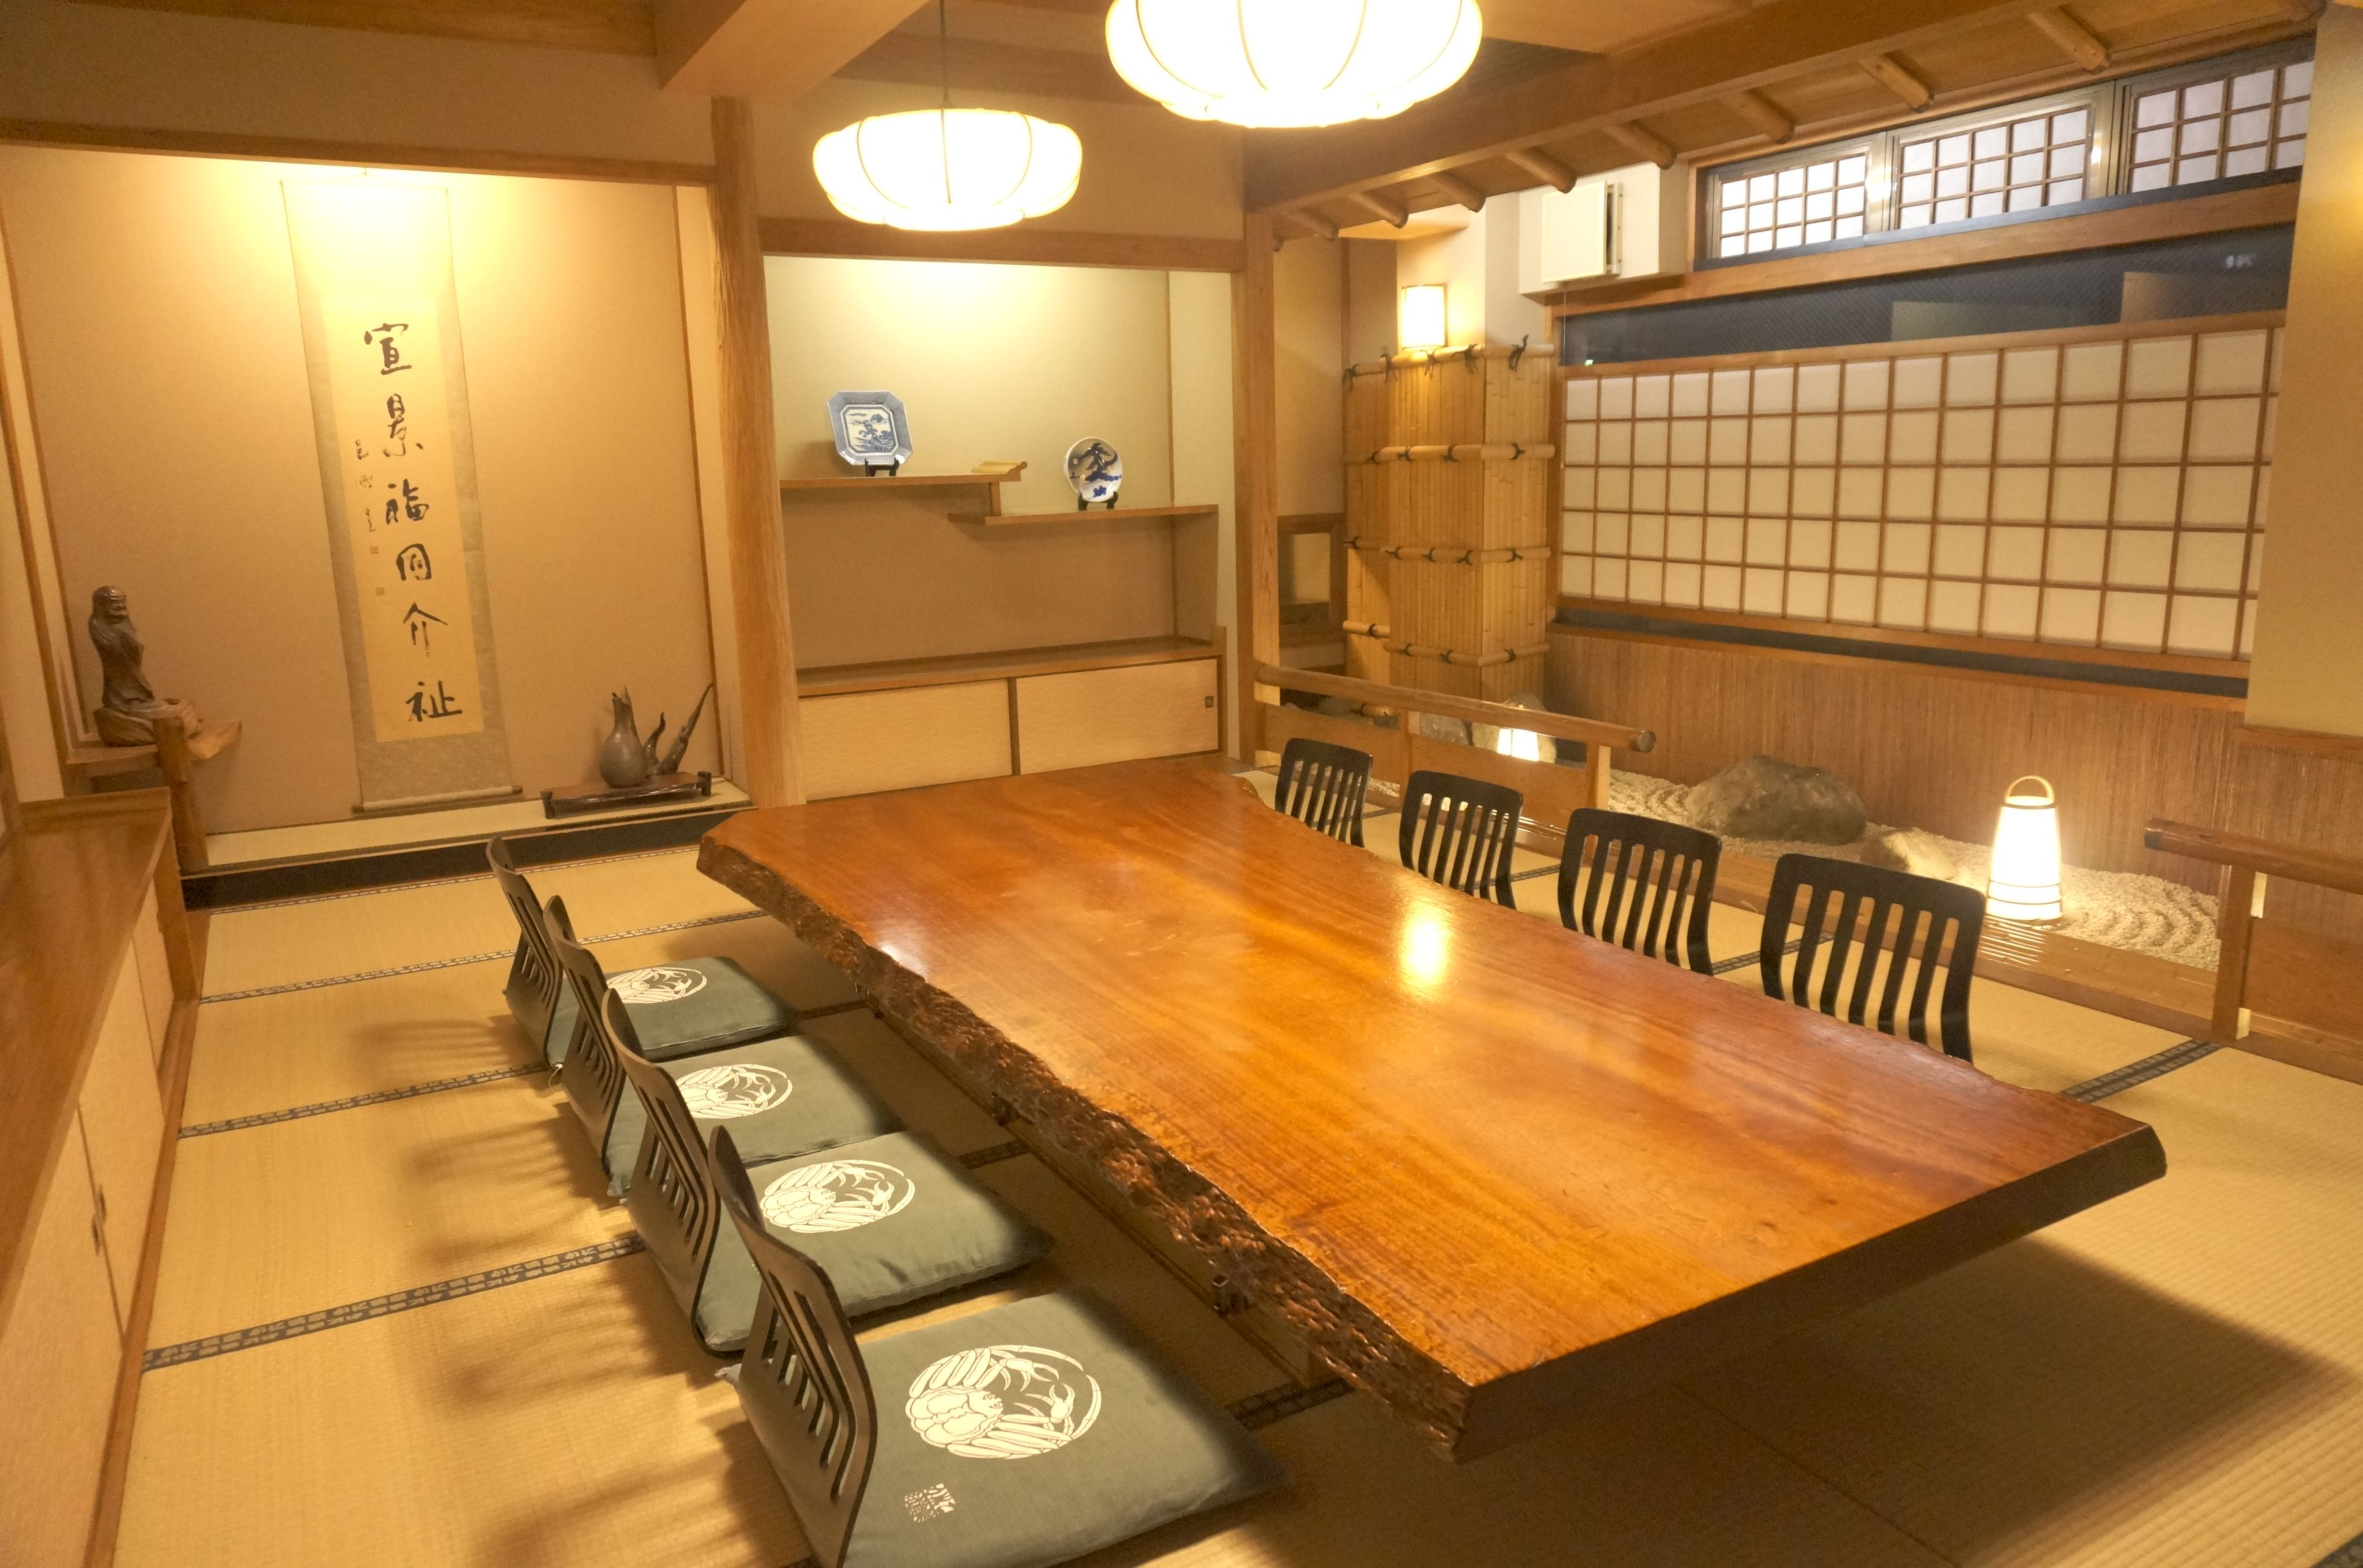 Room private room which enhances Matsuyama branch introspectiveness - 5F celebration post